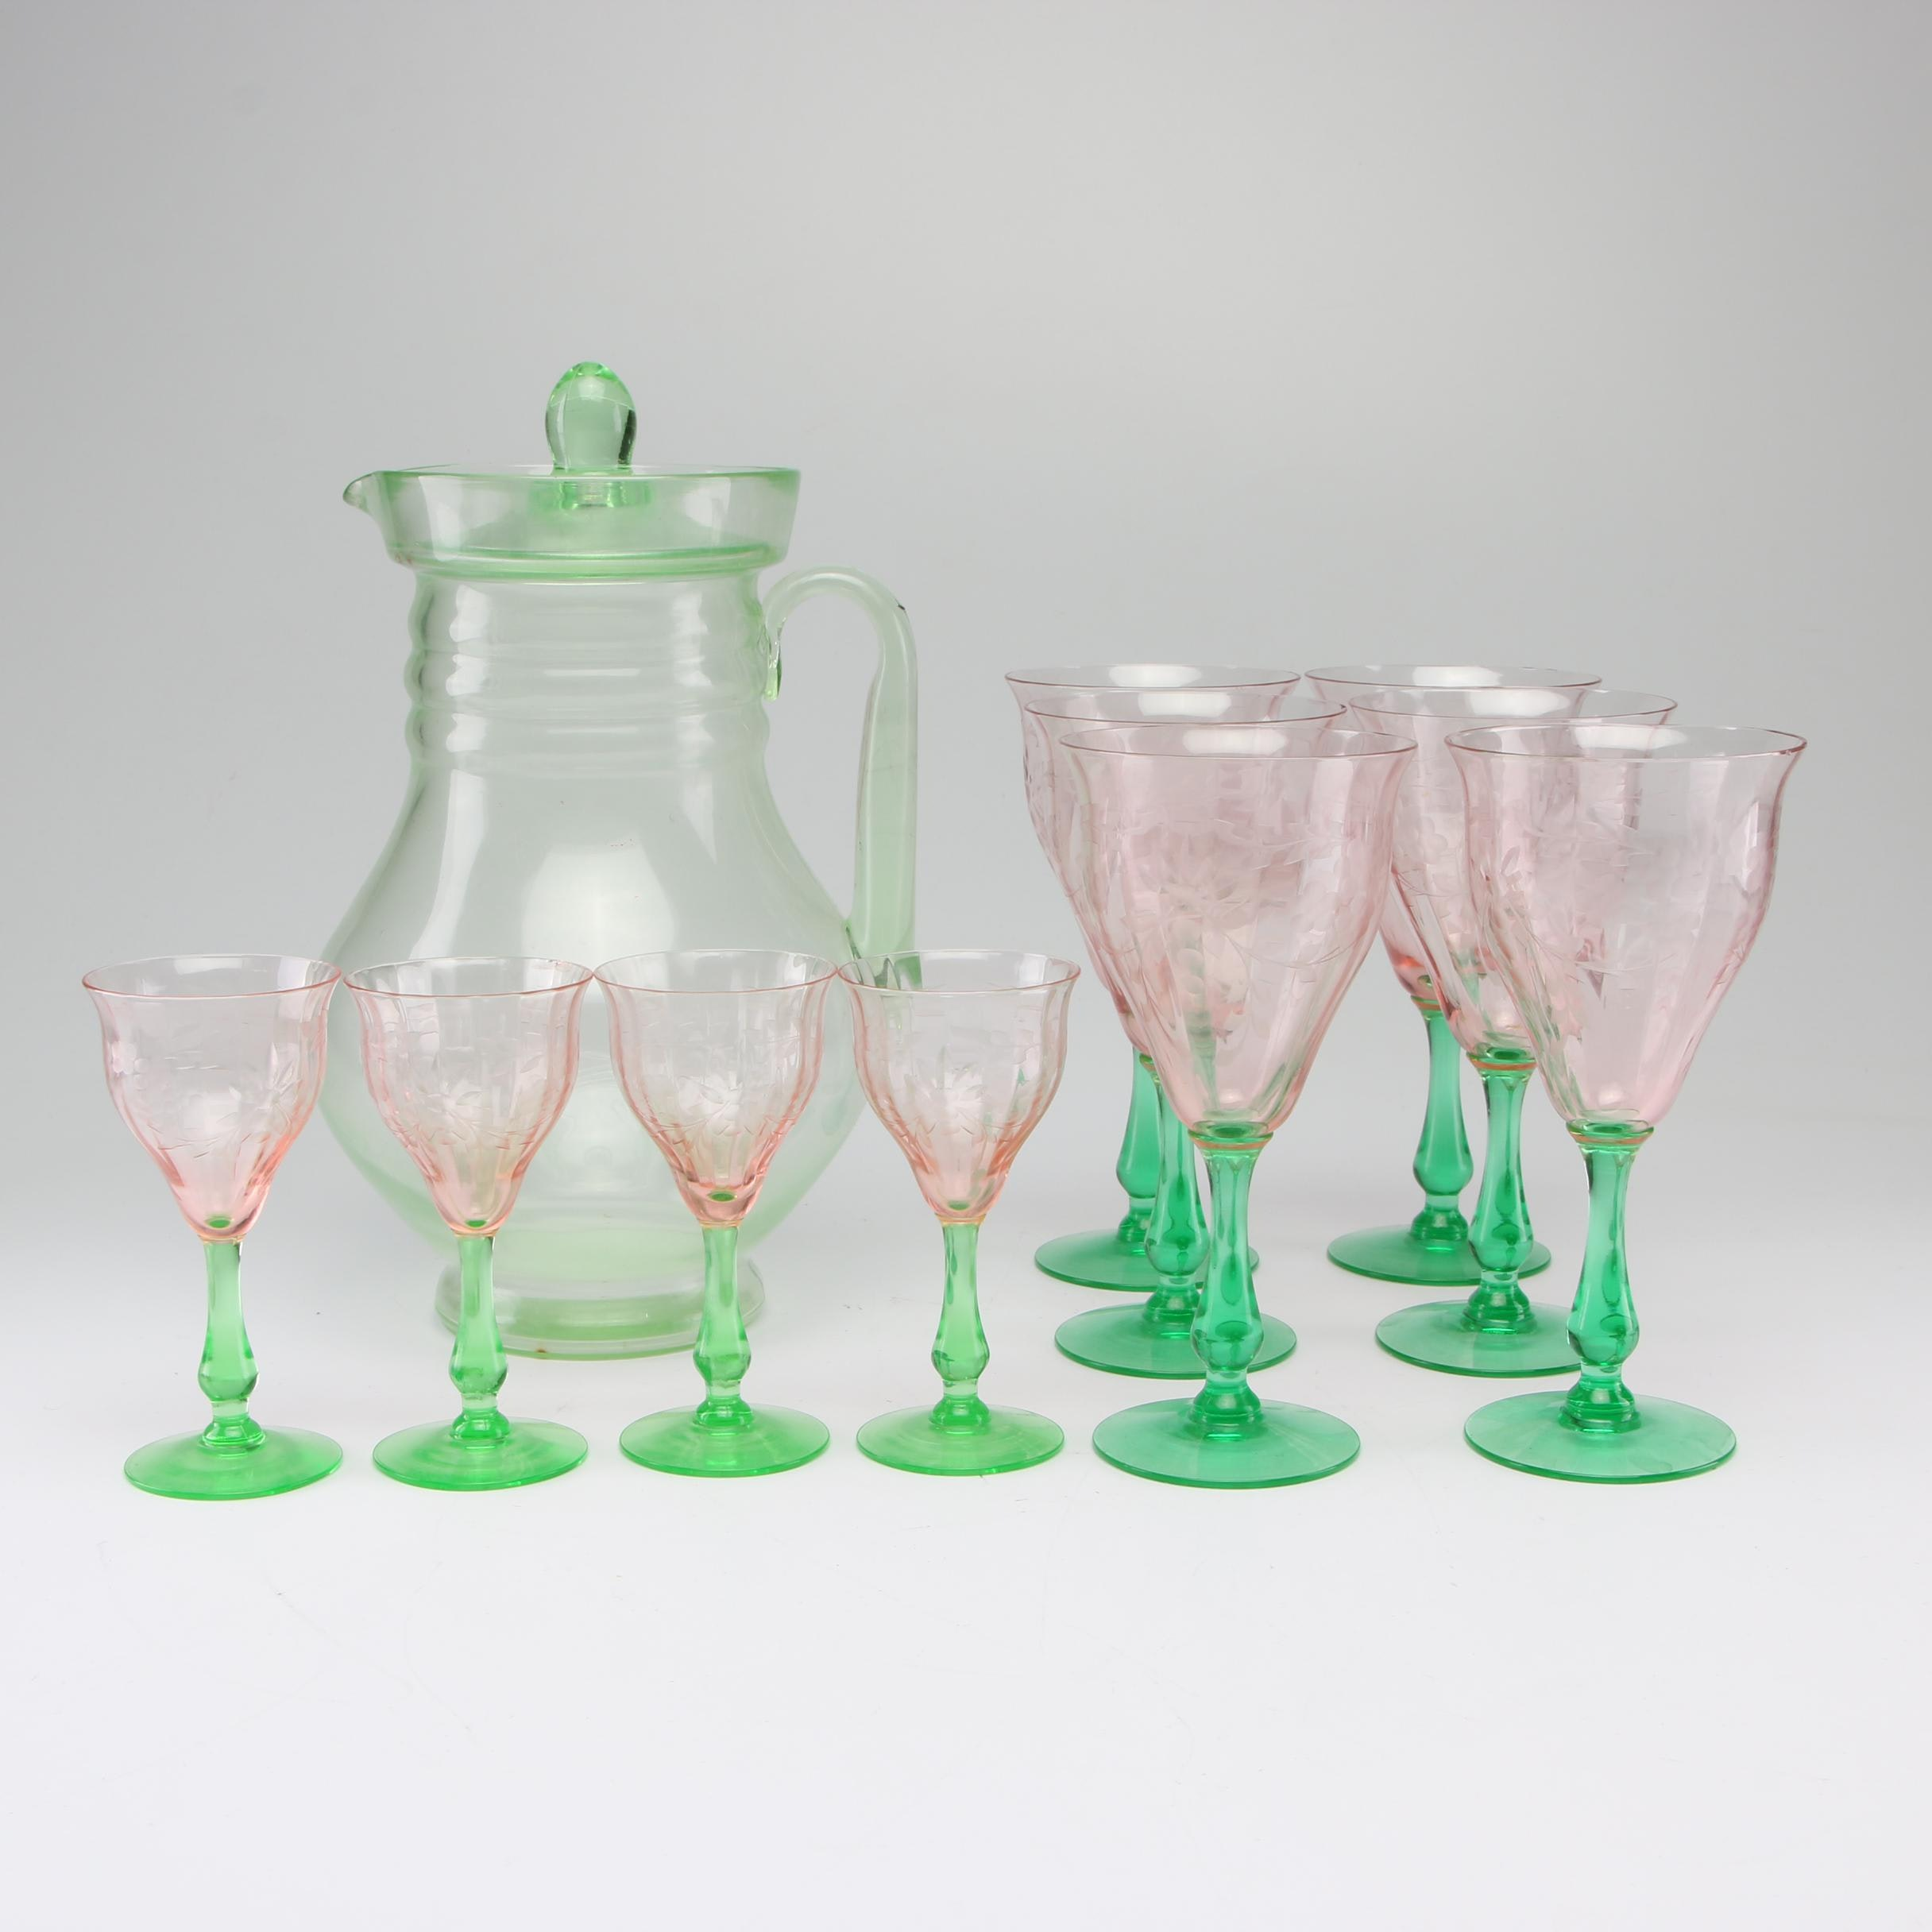 Depression Glass Etched Stemware with Pitcher